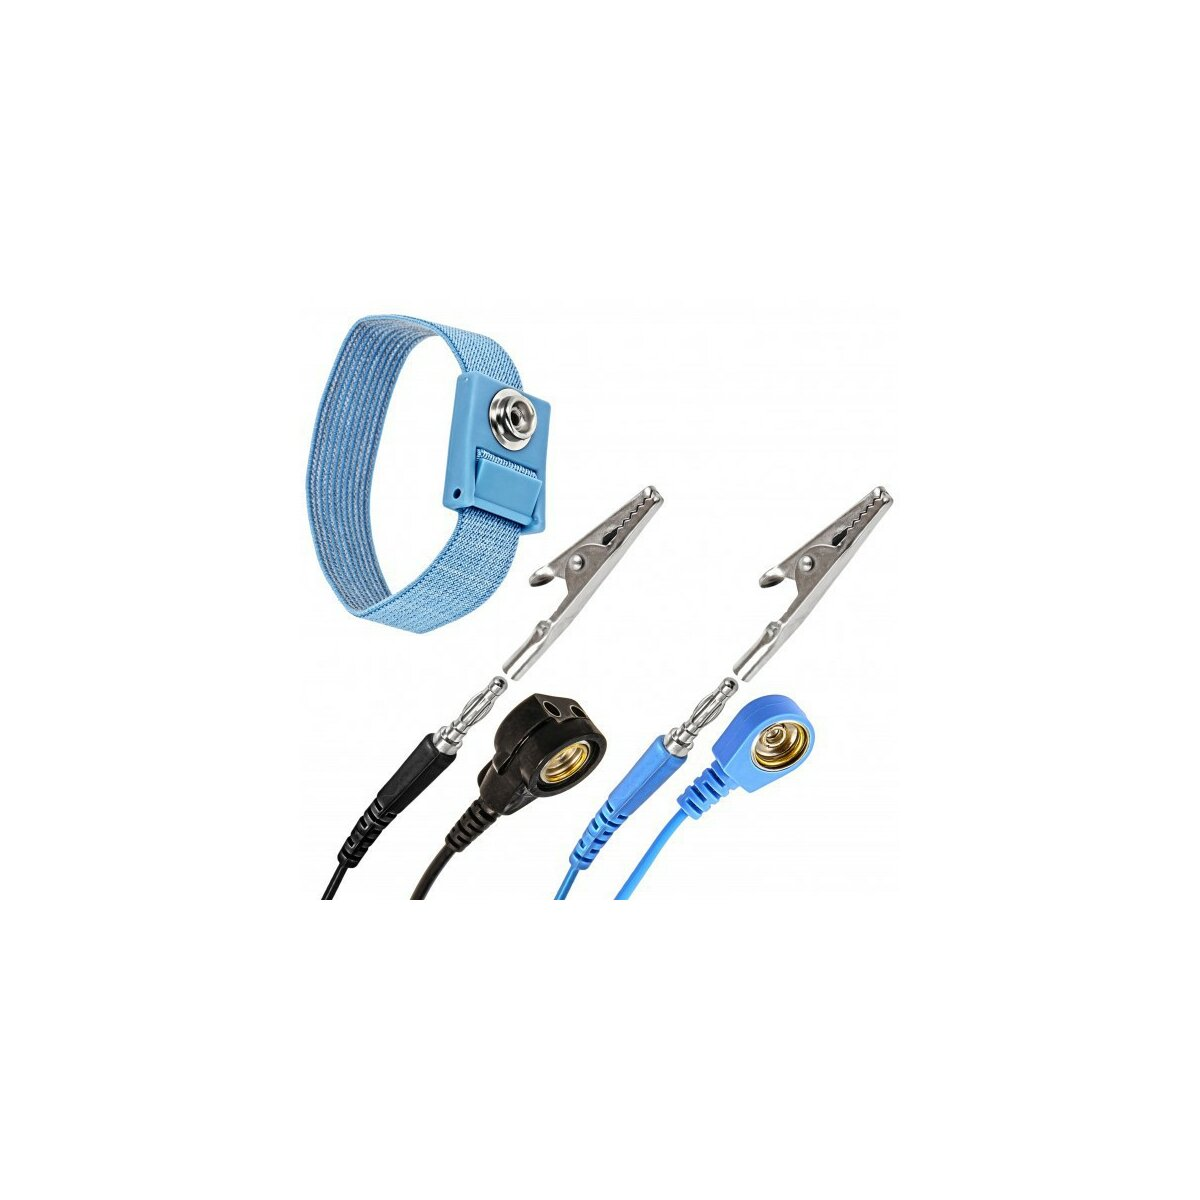 Minadax® ESD Set | Antistatic Mat - Wrist Loop - Earth Cable (Cuff and Extension)